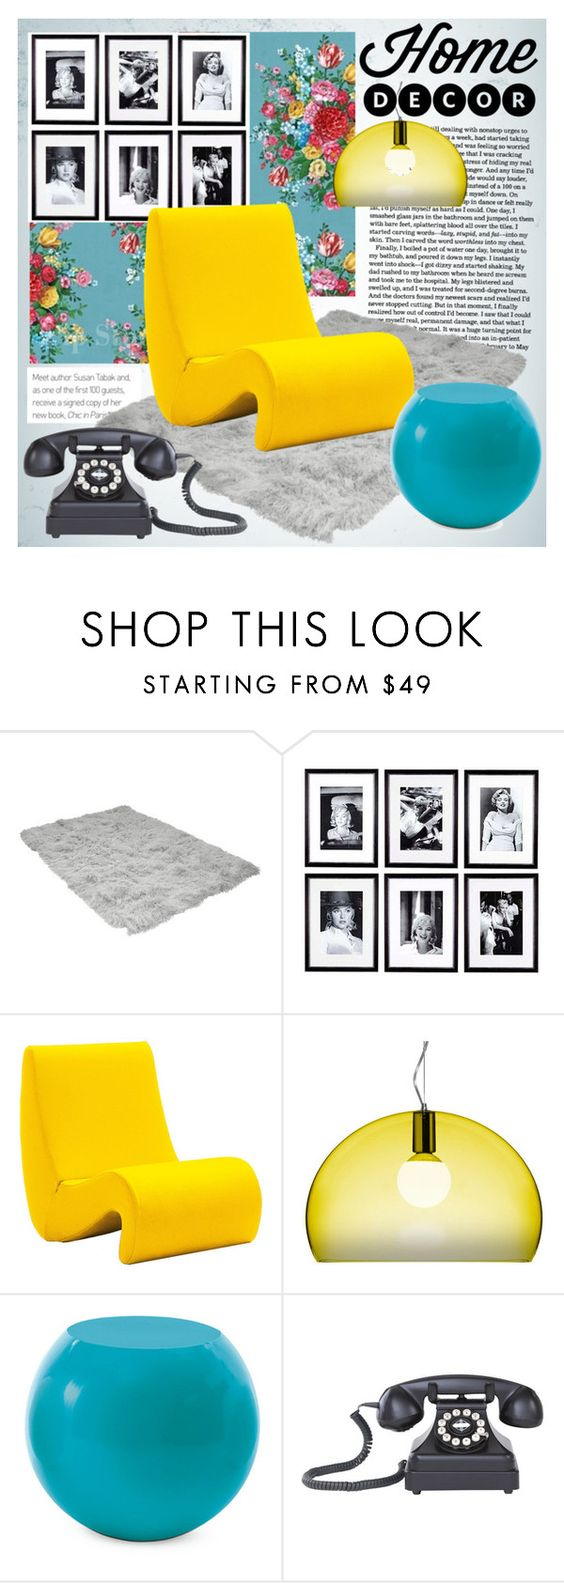 """""""****"""" by thysania ❤ liked on Polyvore featuring interior, interiors, interior design, home, home decor, interior decorating, Eichholtz, Vitra, Kartell and Cappellini"""